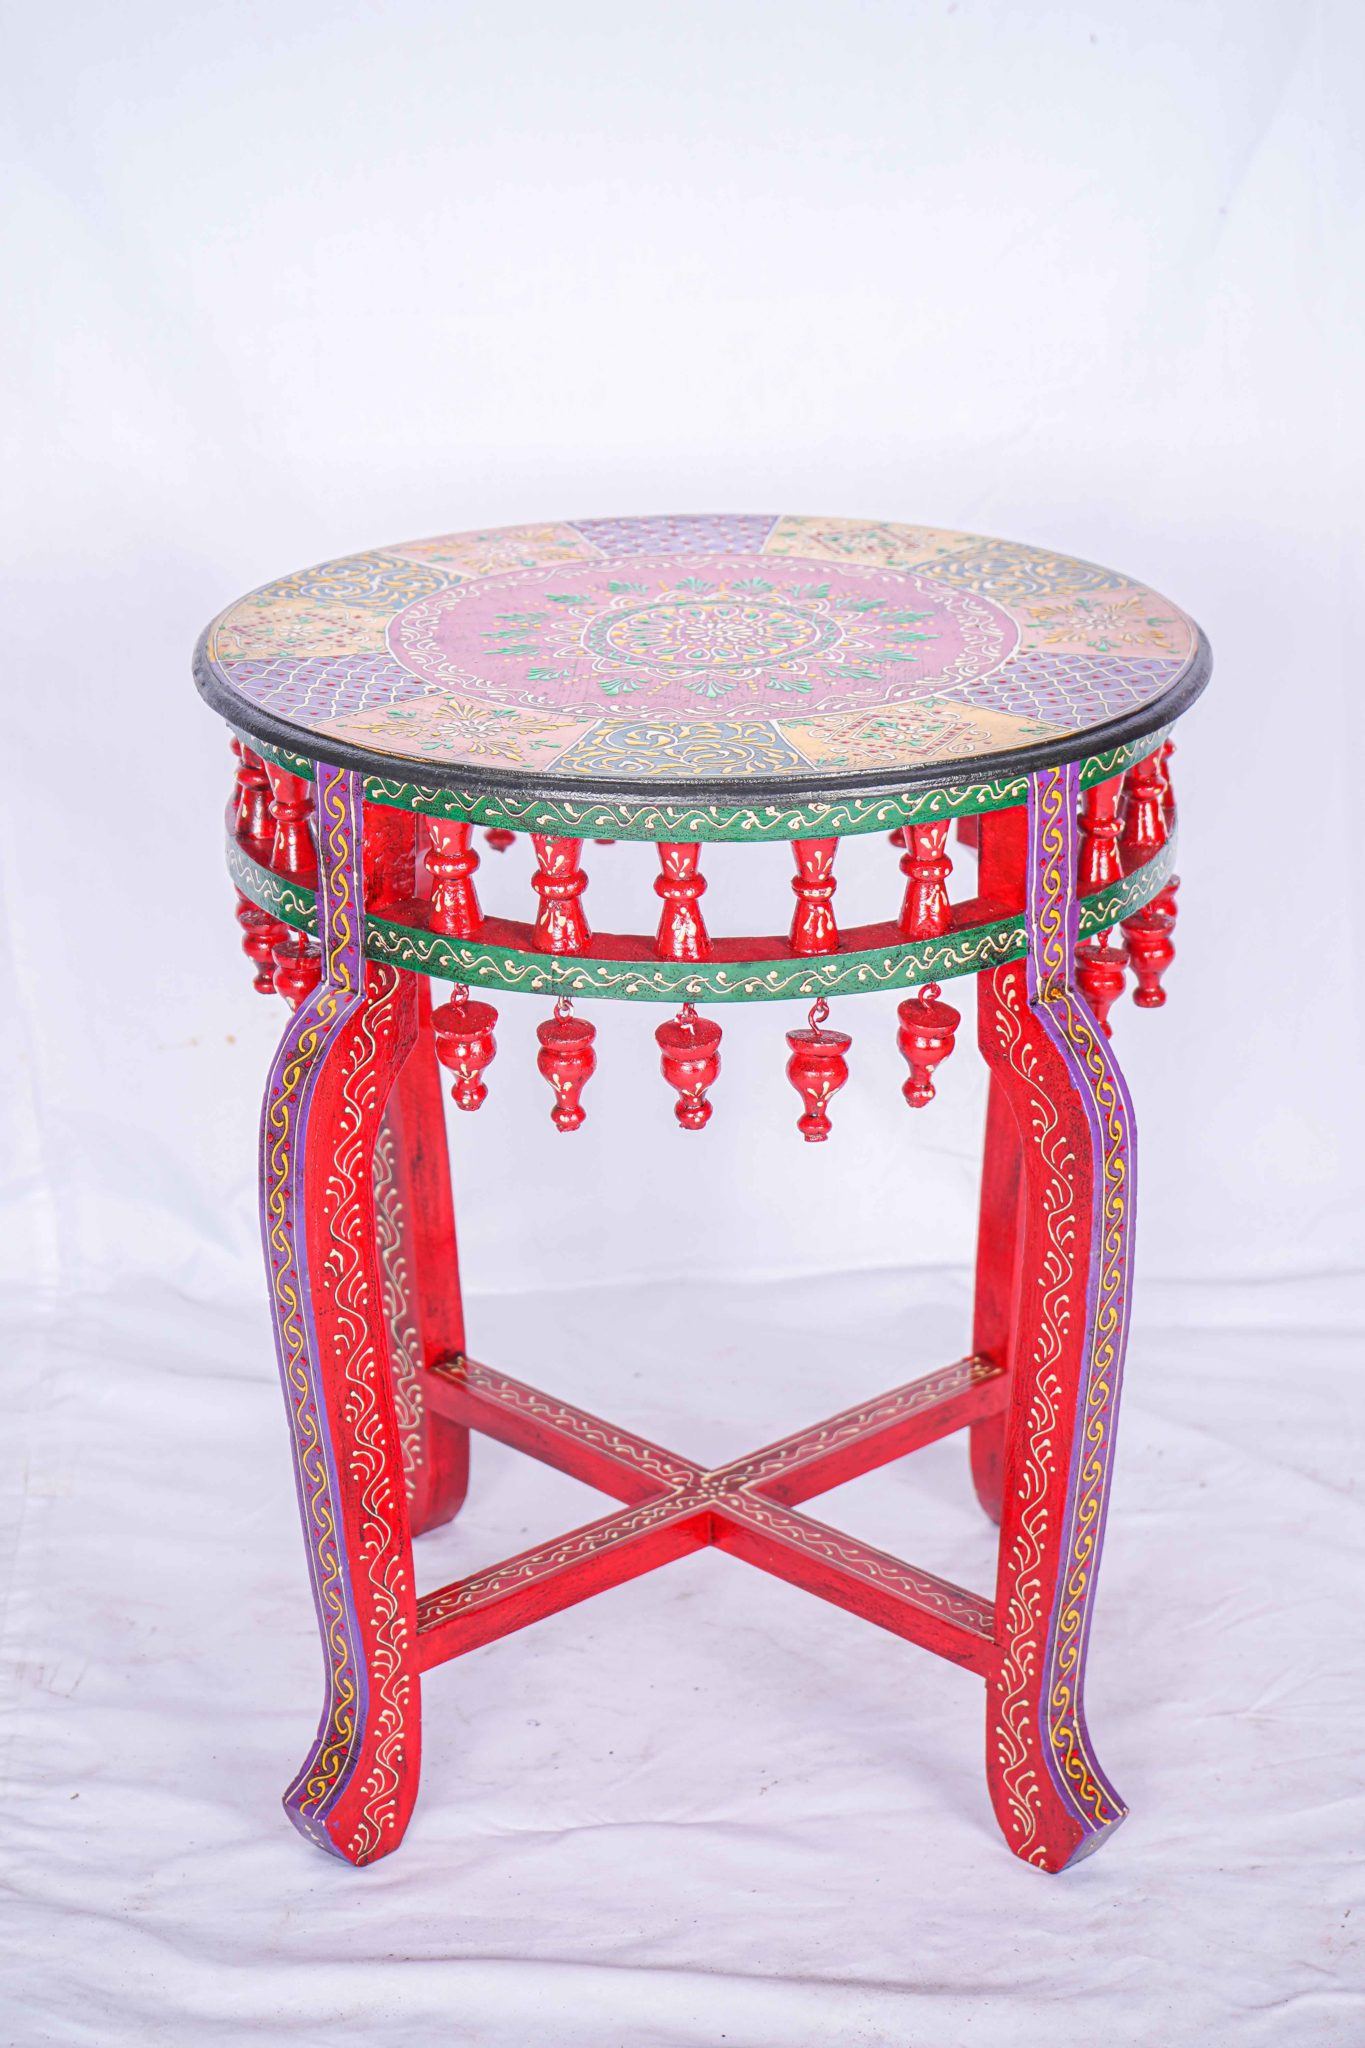 Clearance Sale Wooden Hand Painted Table Indian Design Siam Sawadee